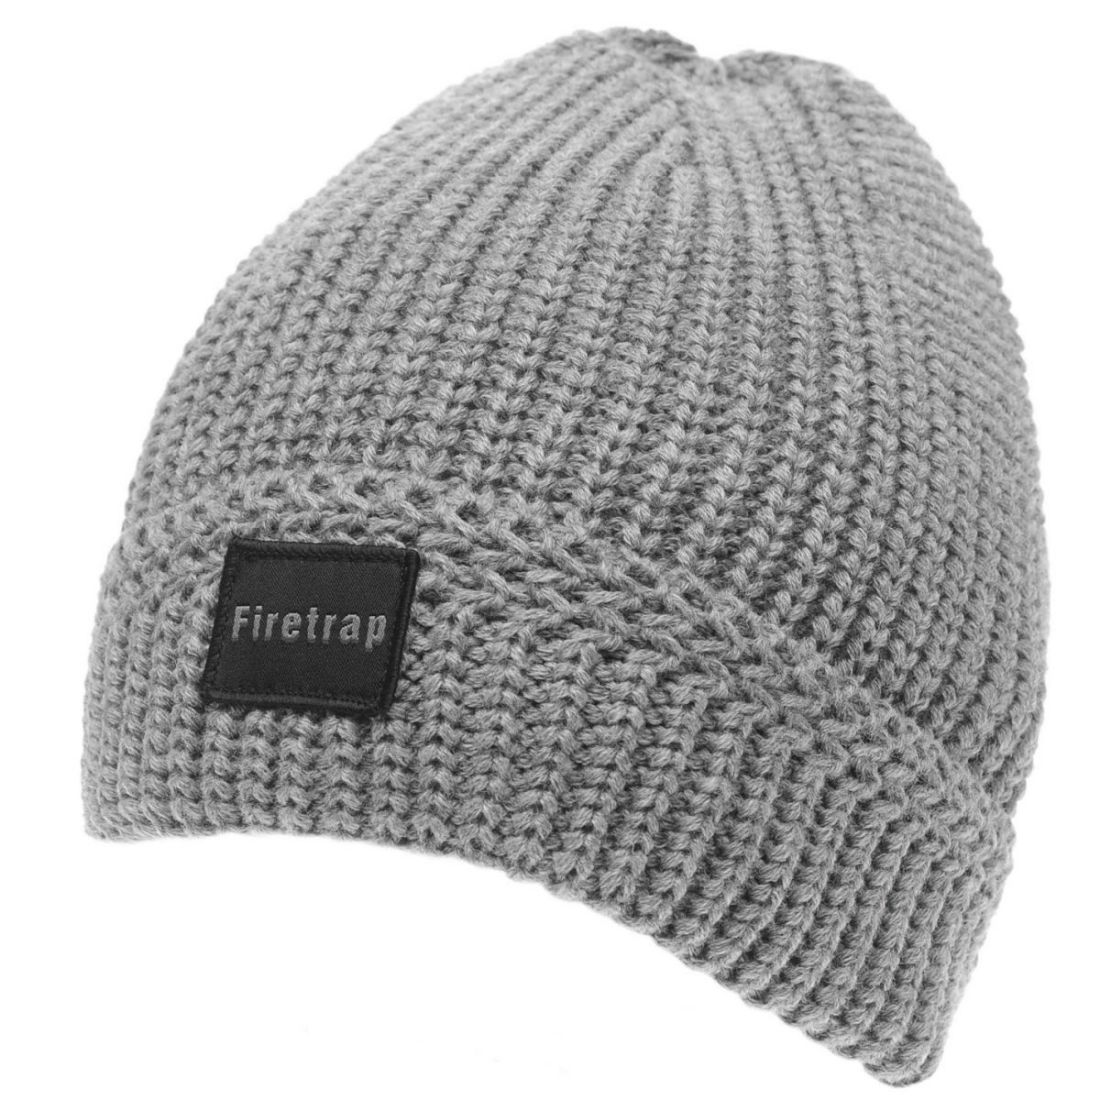 1de723dcb875c Details about Firetrap Mens Ribbed Beanie Hat Winter Warm Stretch